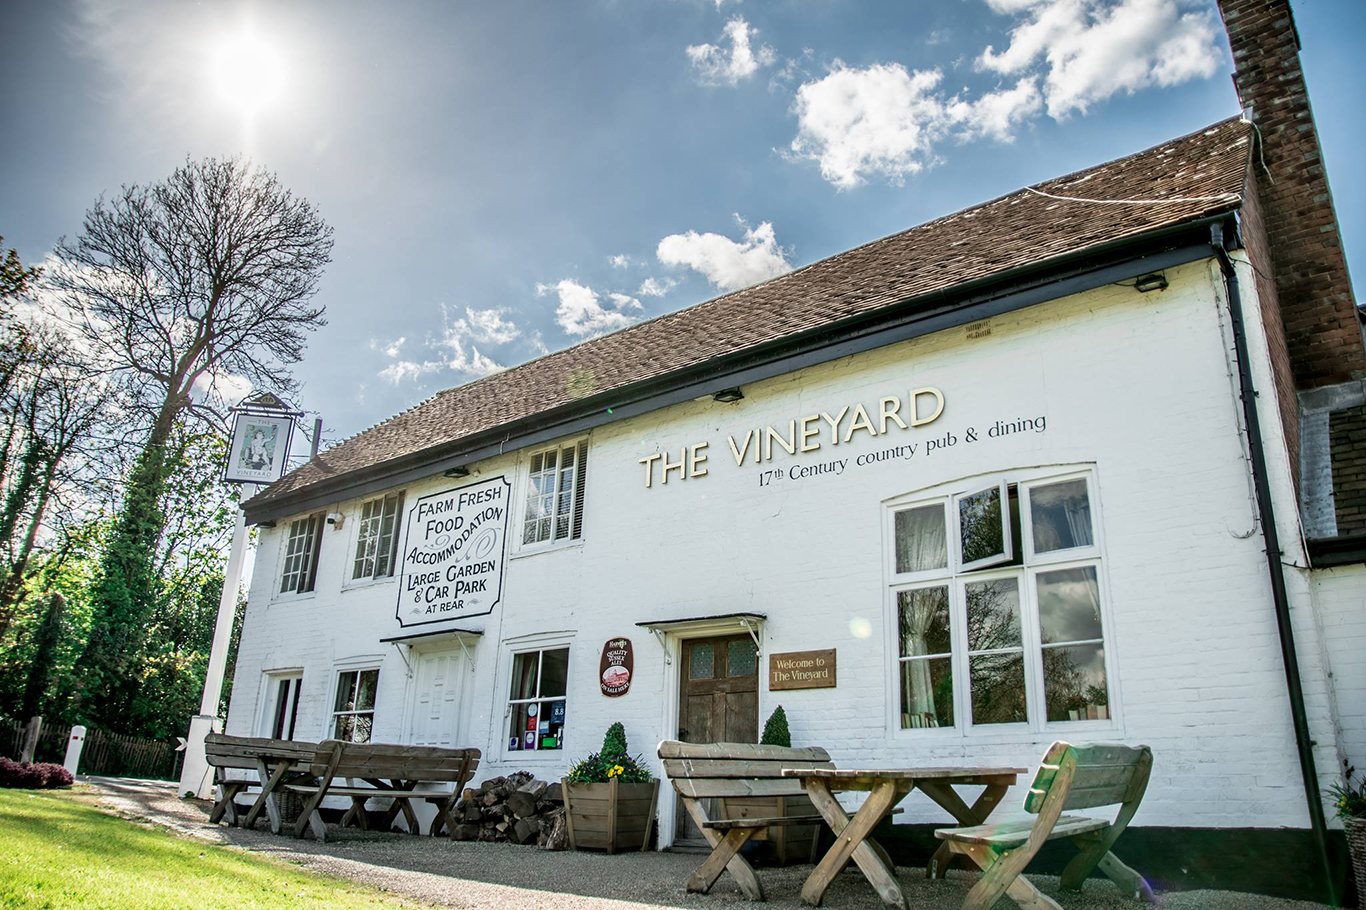 The Vineyard Pub and bed and breakfast in Lamberhurst, Tunbridge Wells